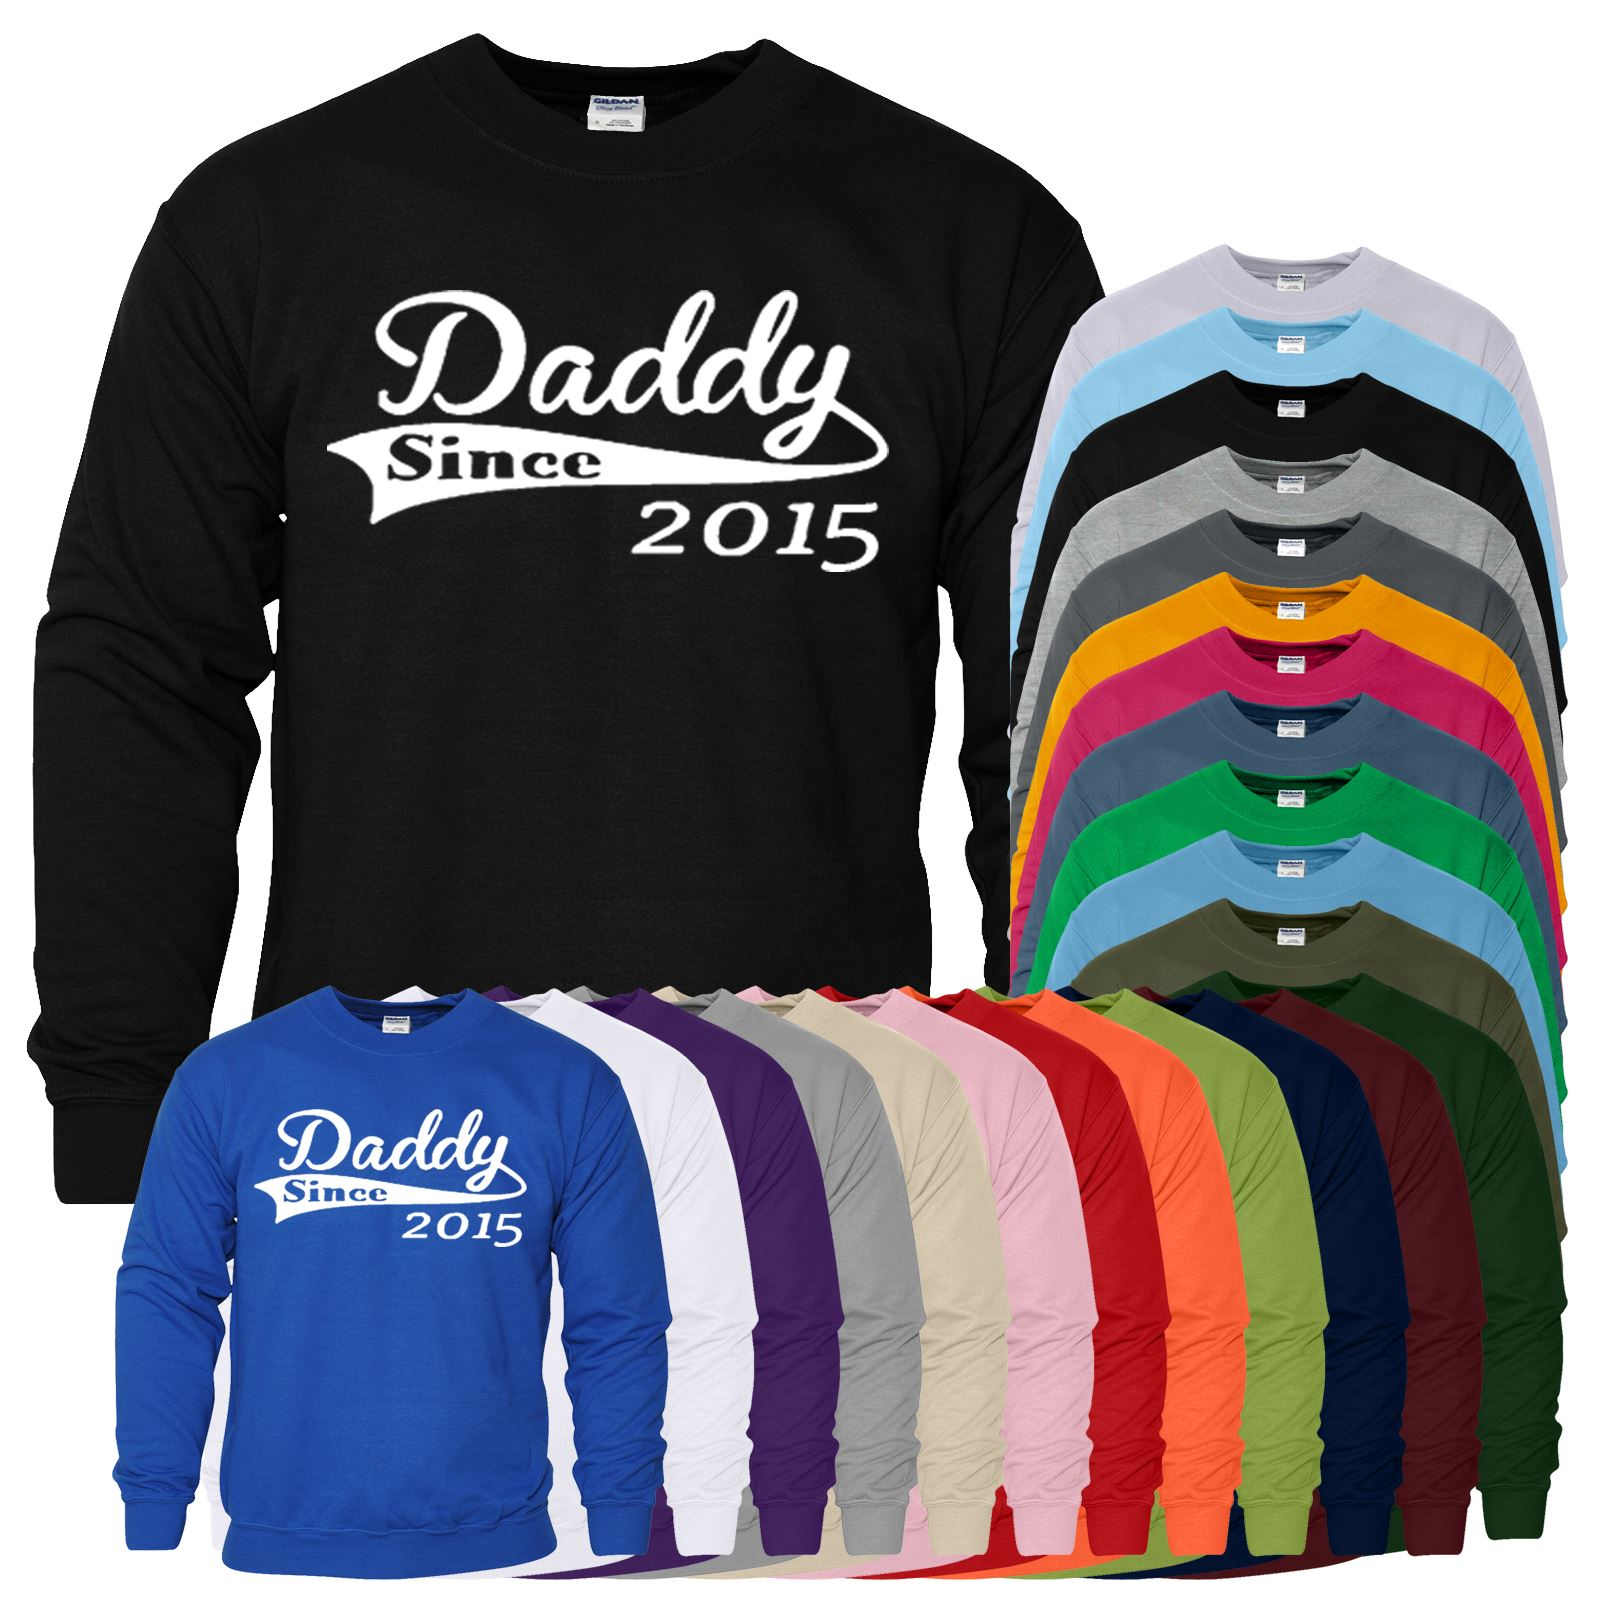 Mens Unisex SweatShirt Daddy Since 2015 Father Day Gift New Born Baby Sweater